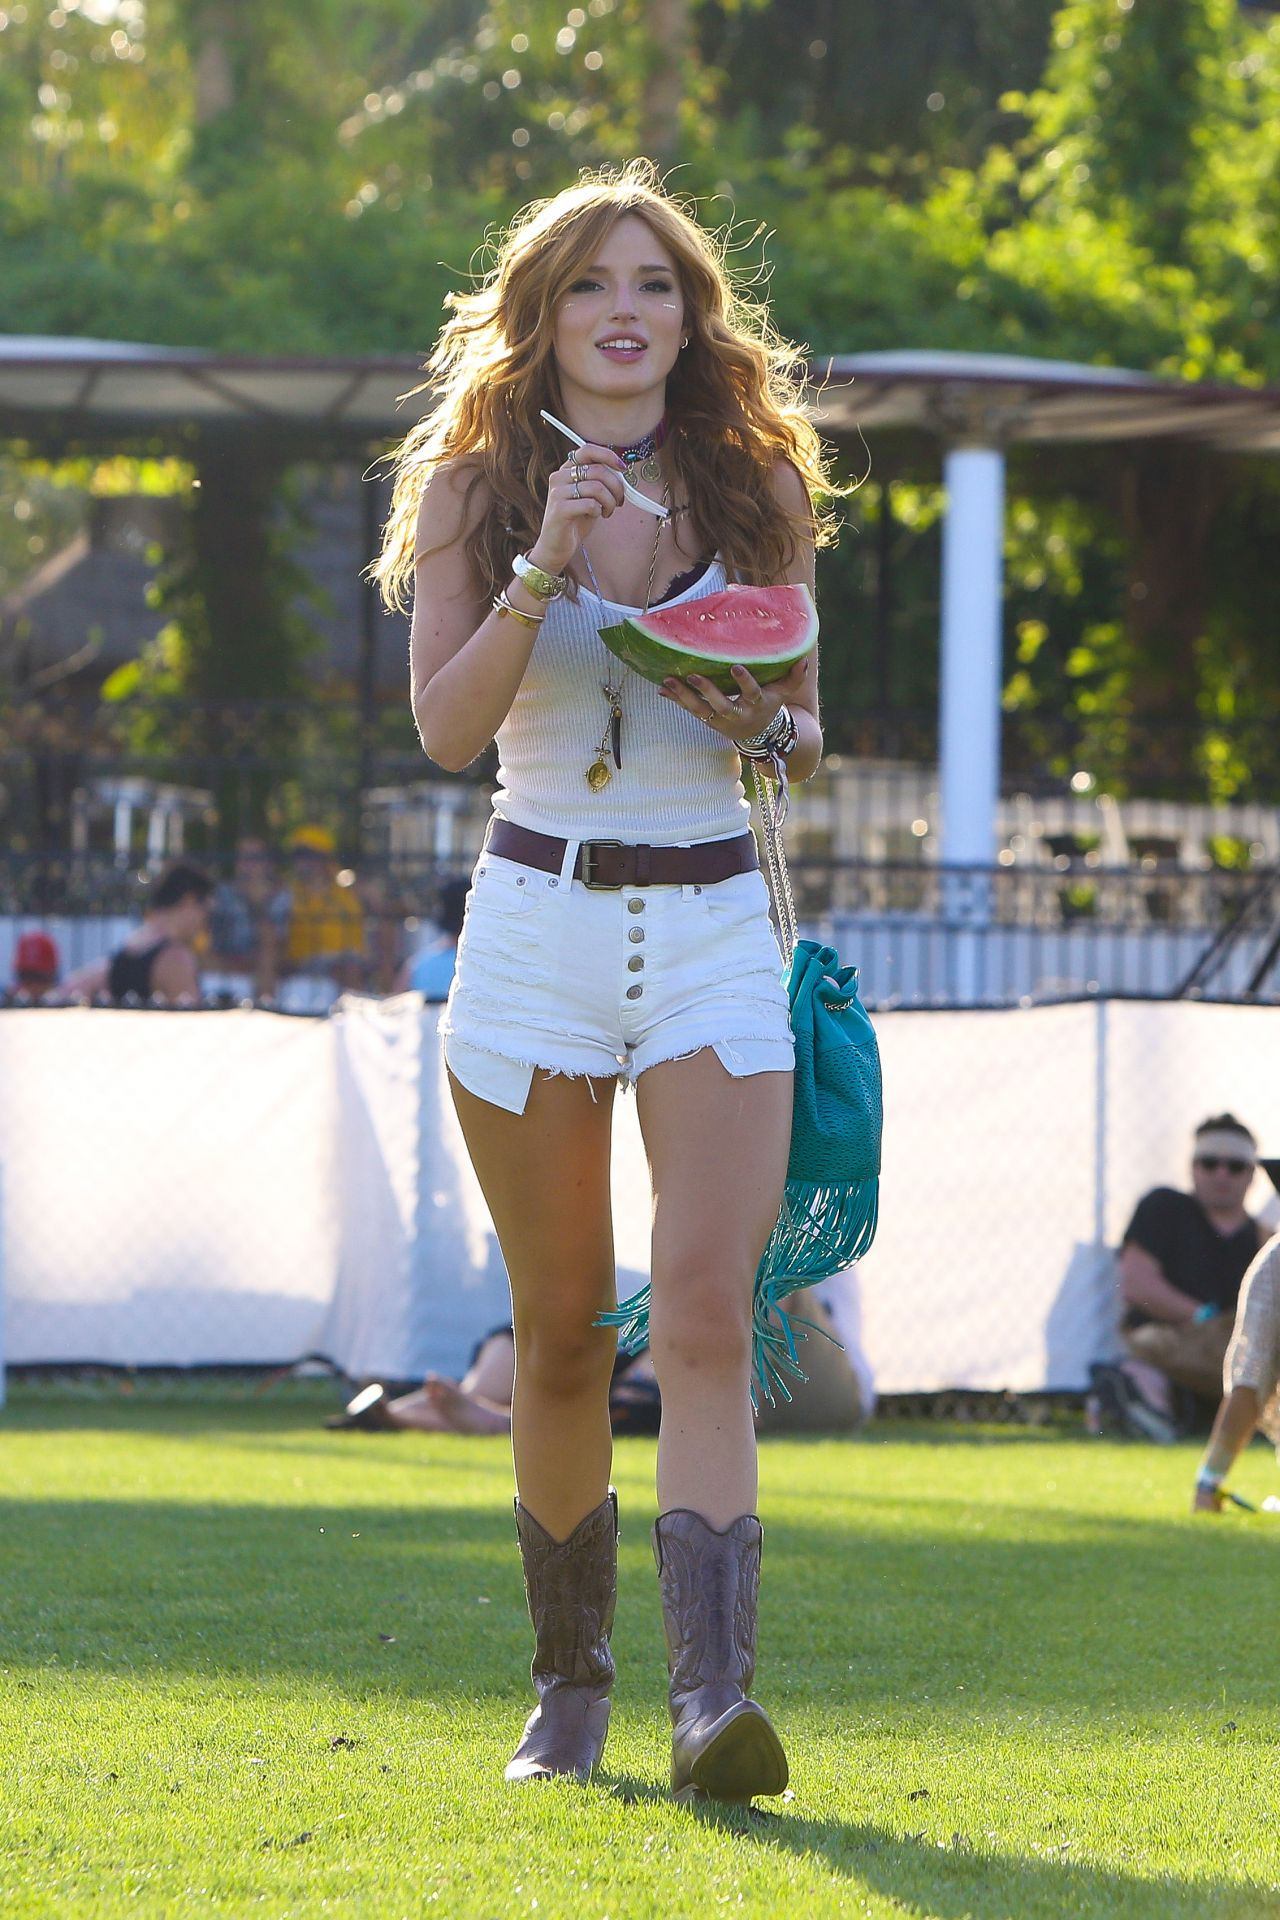 bella-thorne-2015-coachella-music-festival-day-2-empire-polo-grounds-indio_3